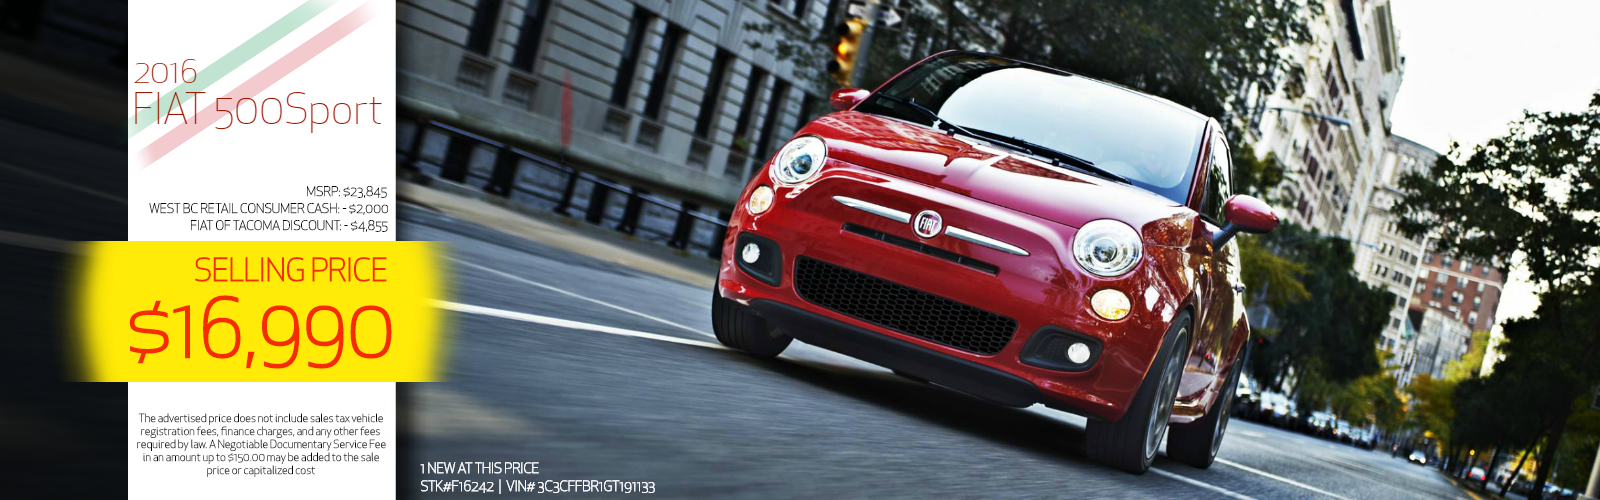 2016 FIAT 500 on sale at FIAT of Tacoma, WA